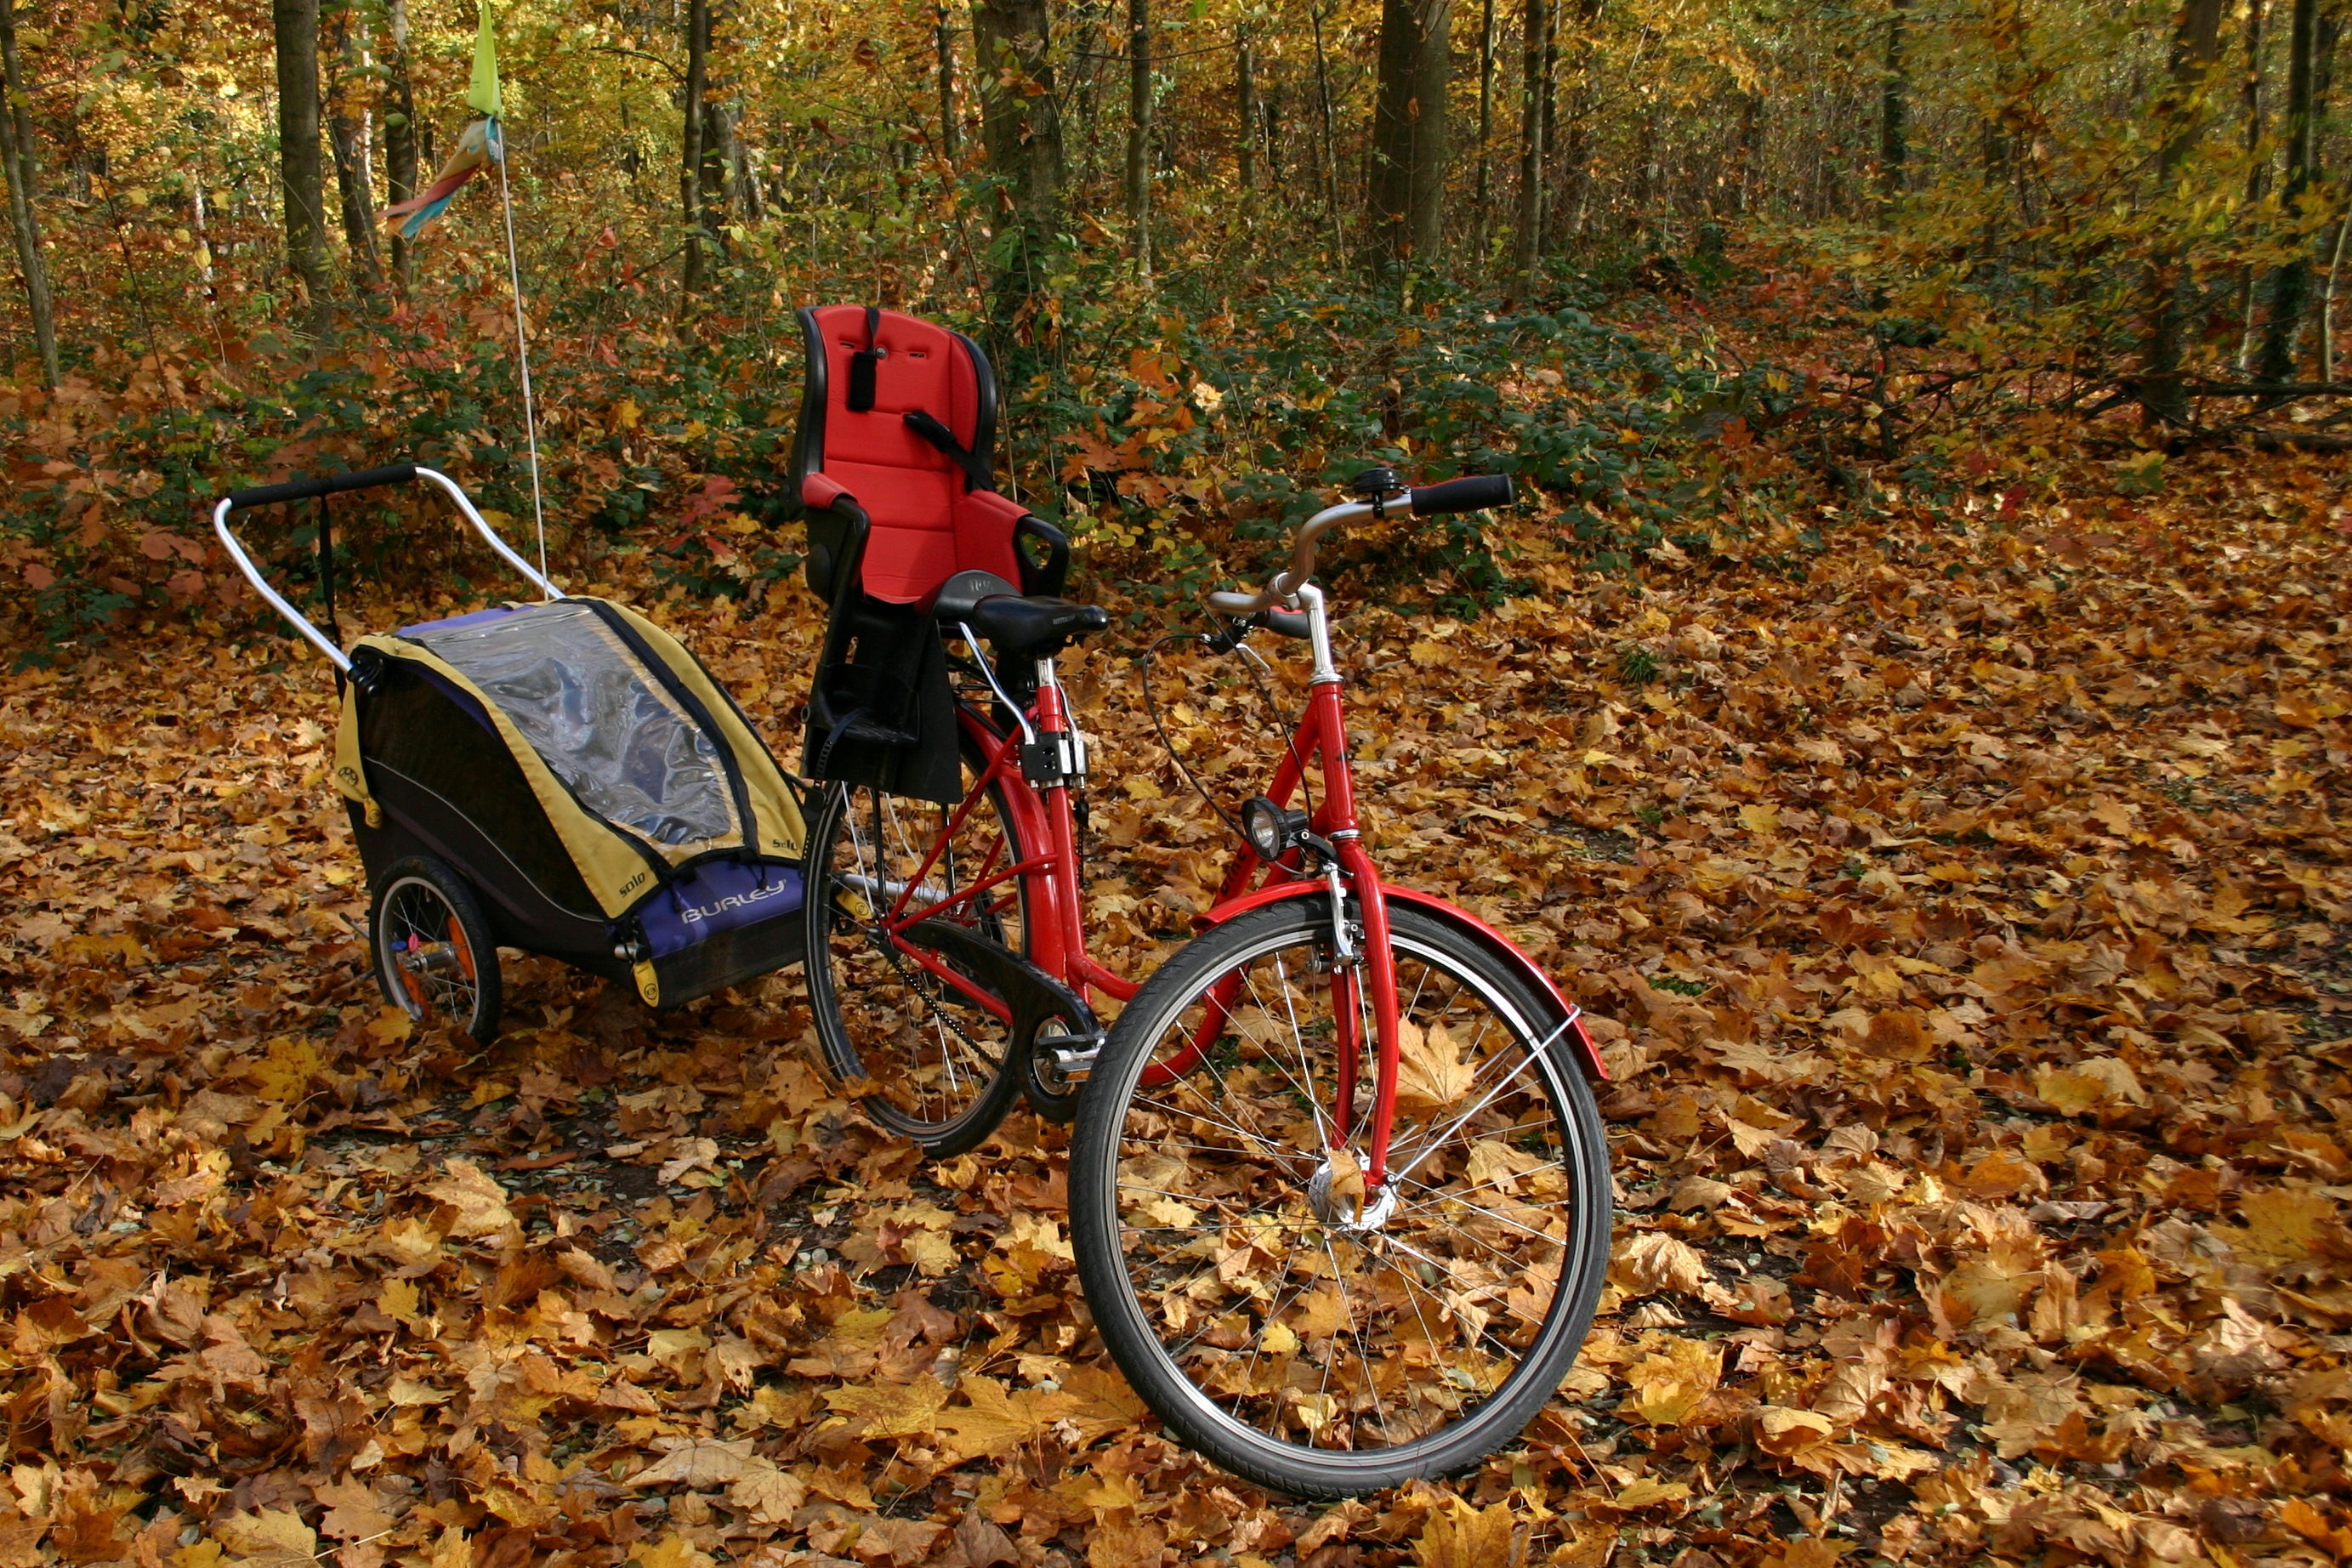 bicycle with trailer parked in leaves